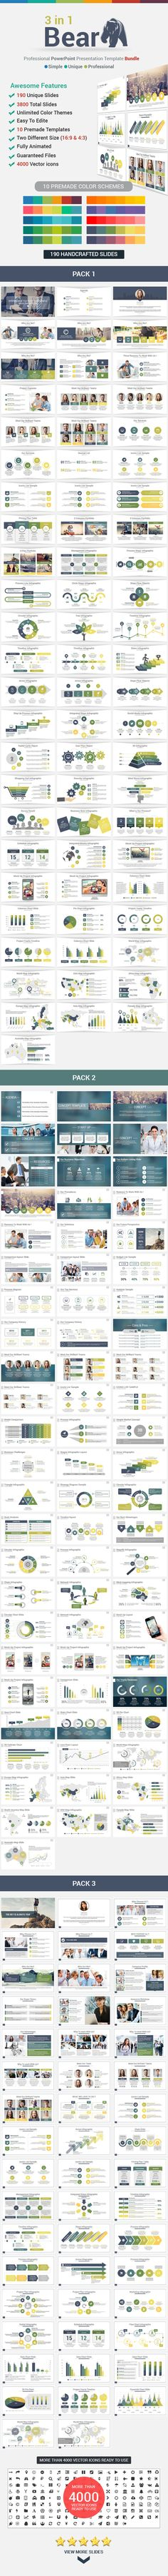 3 in 1 Bear PowerPoint Template Bundle #design #slides Download: http://graphicriver.net/item/3-in-1-bear-powerpoint-template-bundle/13028387?ref=ksioks